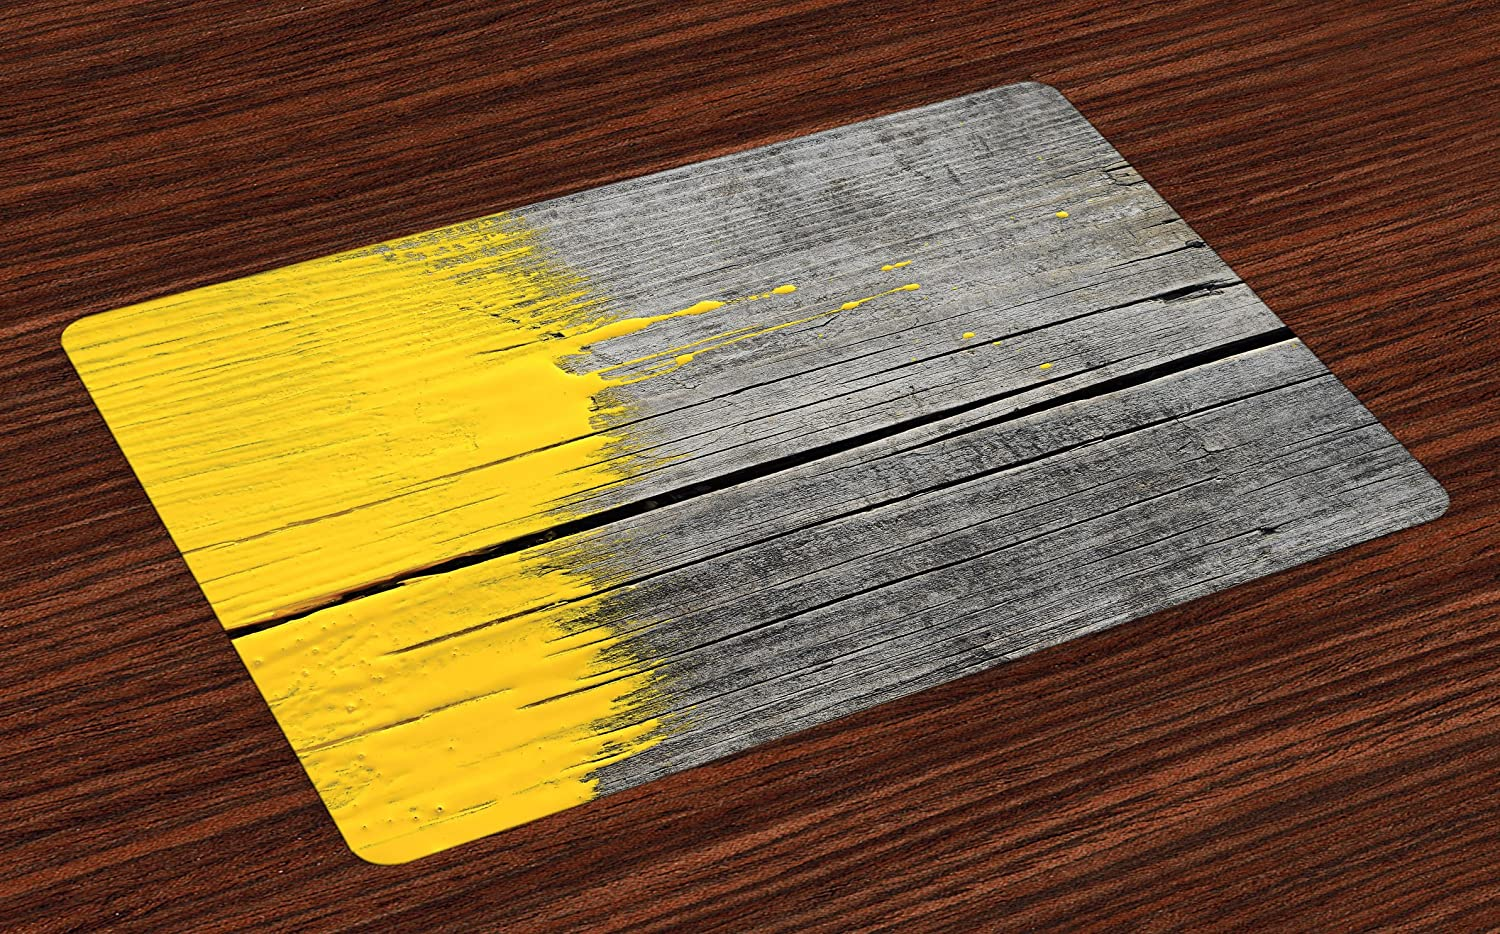 Ambesonne Yellow Place Mats Set of 4, Ancient Wooden Board with Yellow Paint Splashes Brush Stroke Grunge Design Elements, Washable Fabric Placemats for Dining Room Kitchen Table Decor, Yellow Grey